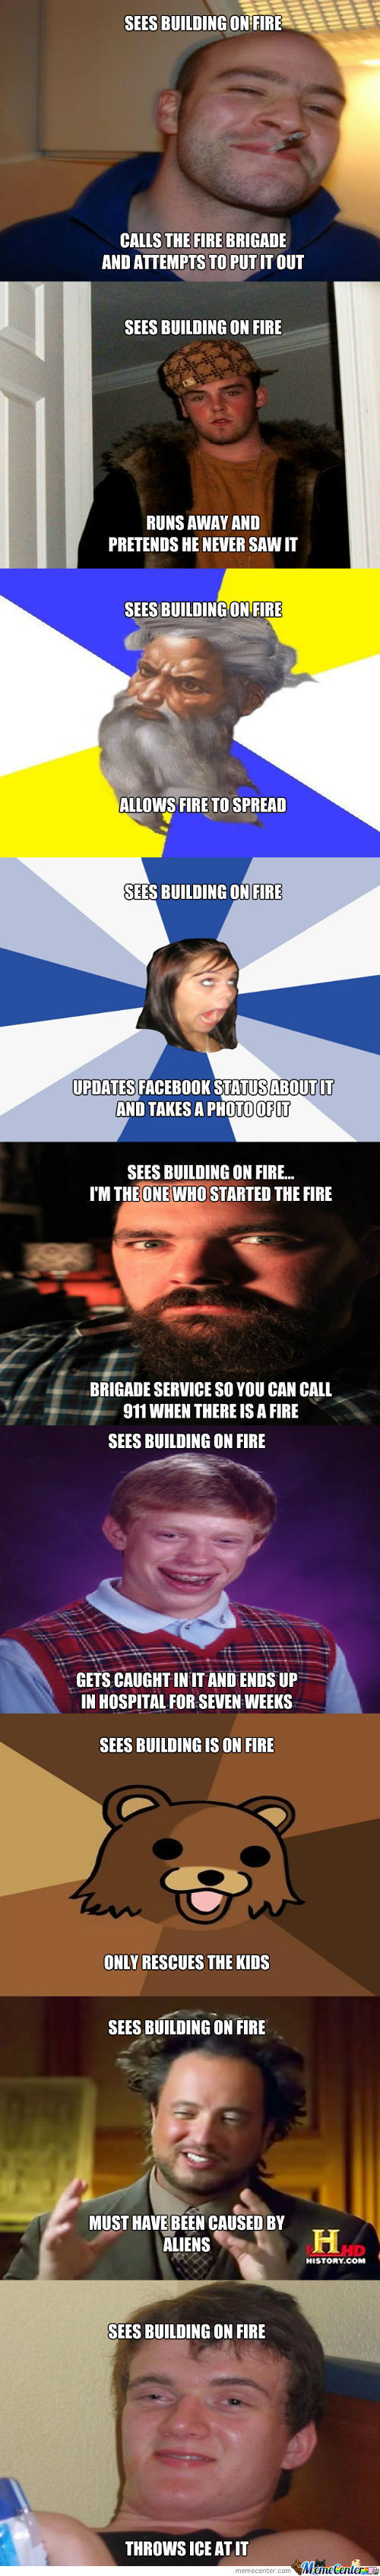 When Buildings Set On Fire